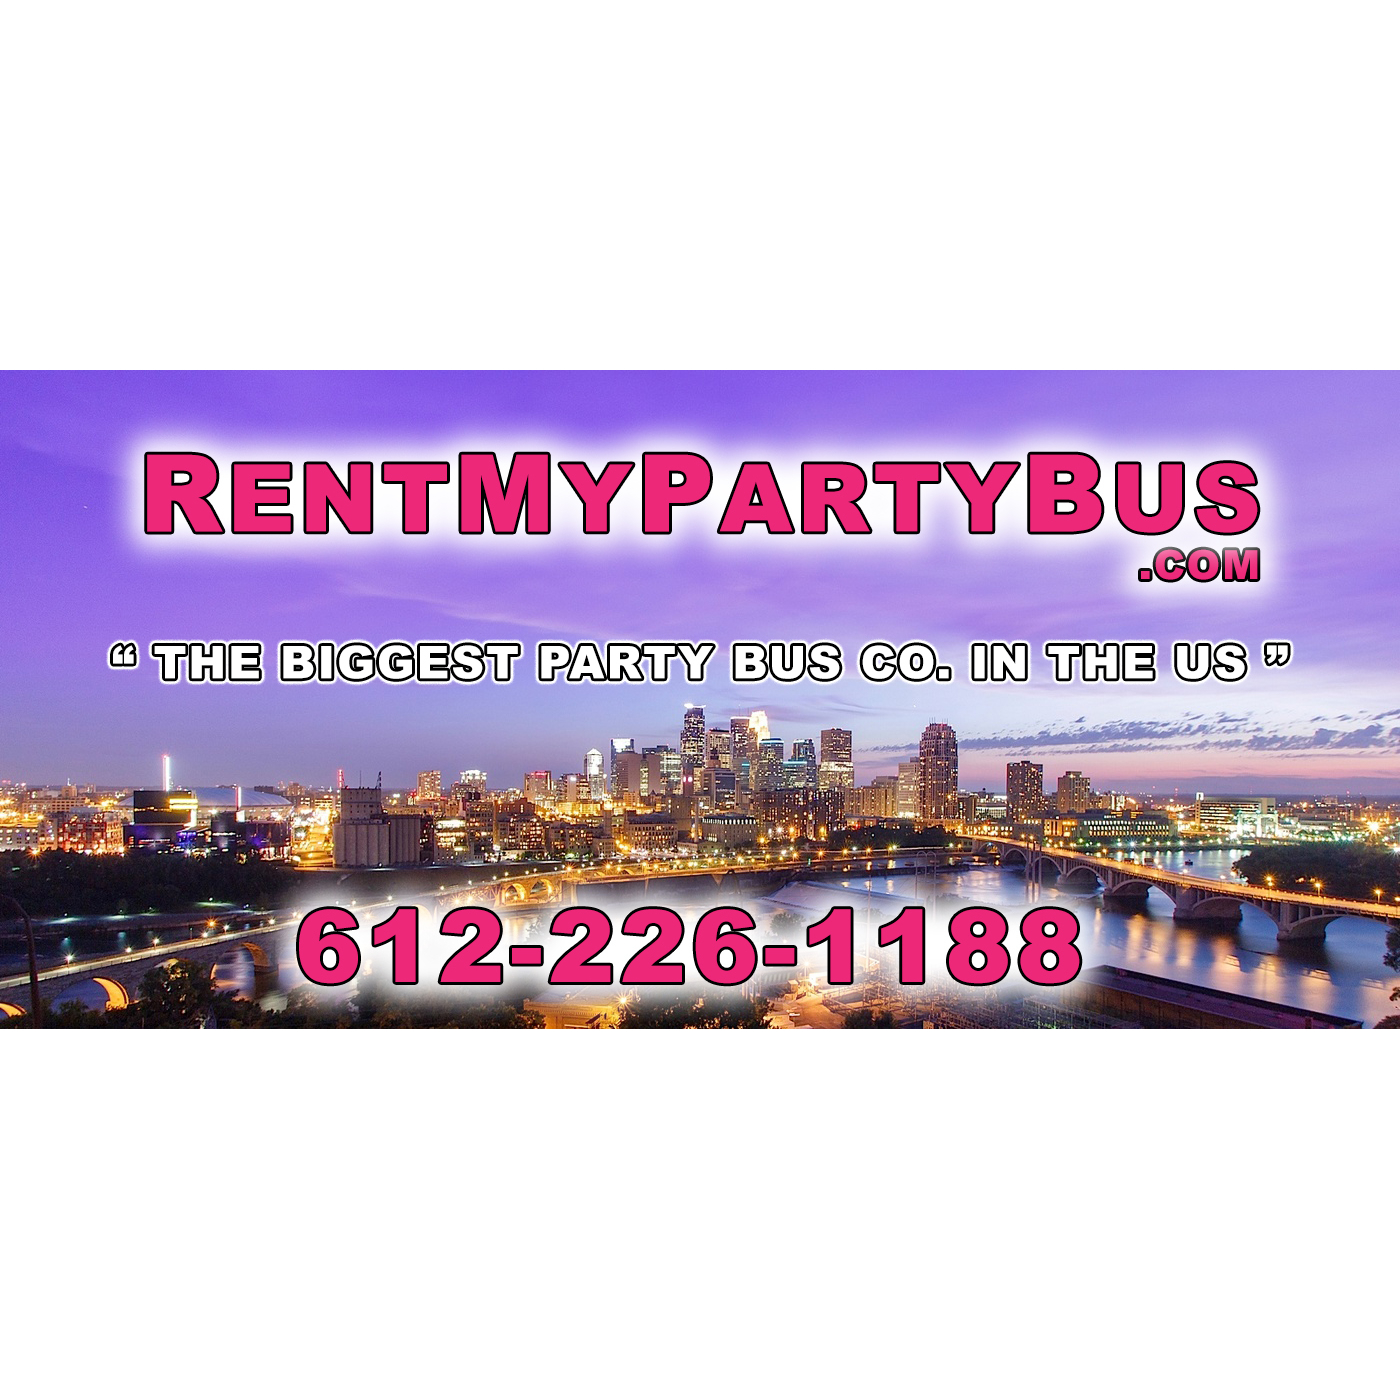 RentMyPartyBus, Inc. image 27